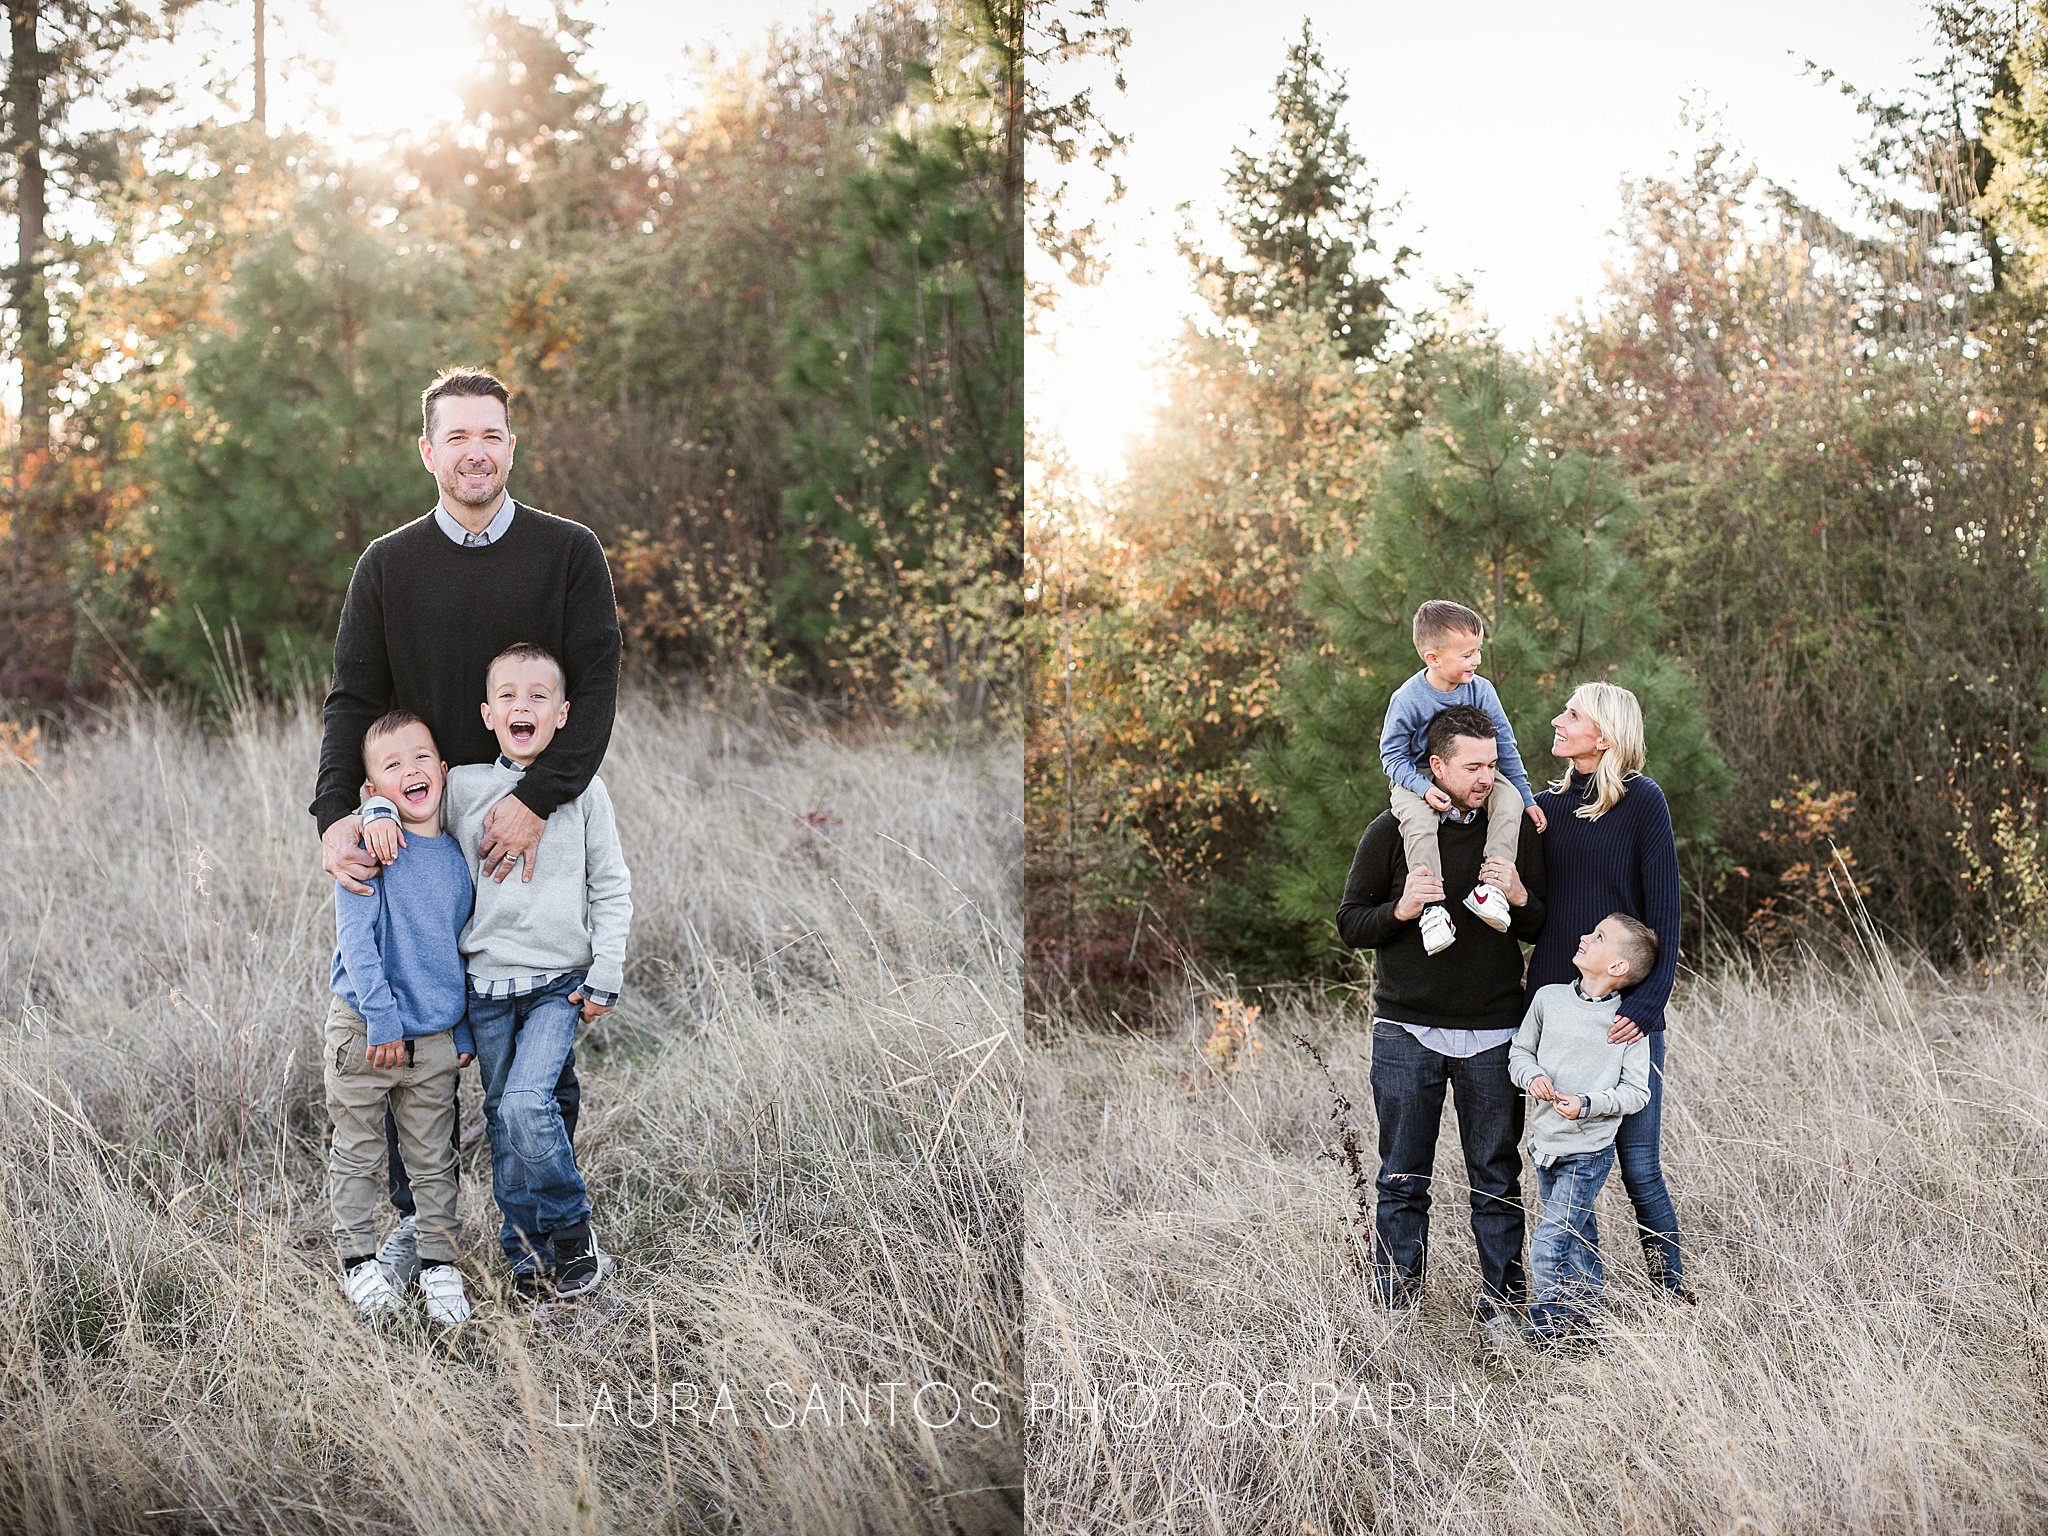 Laura Santos Photography Portland Oregon Family Photographer_0814.jpg